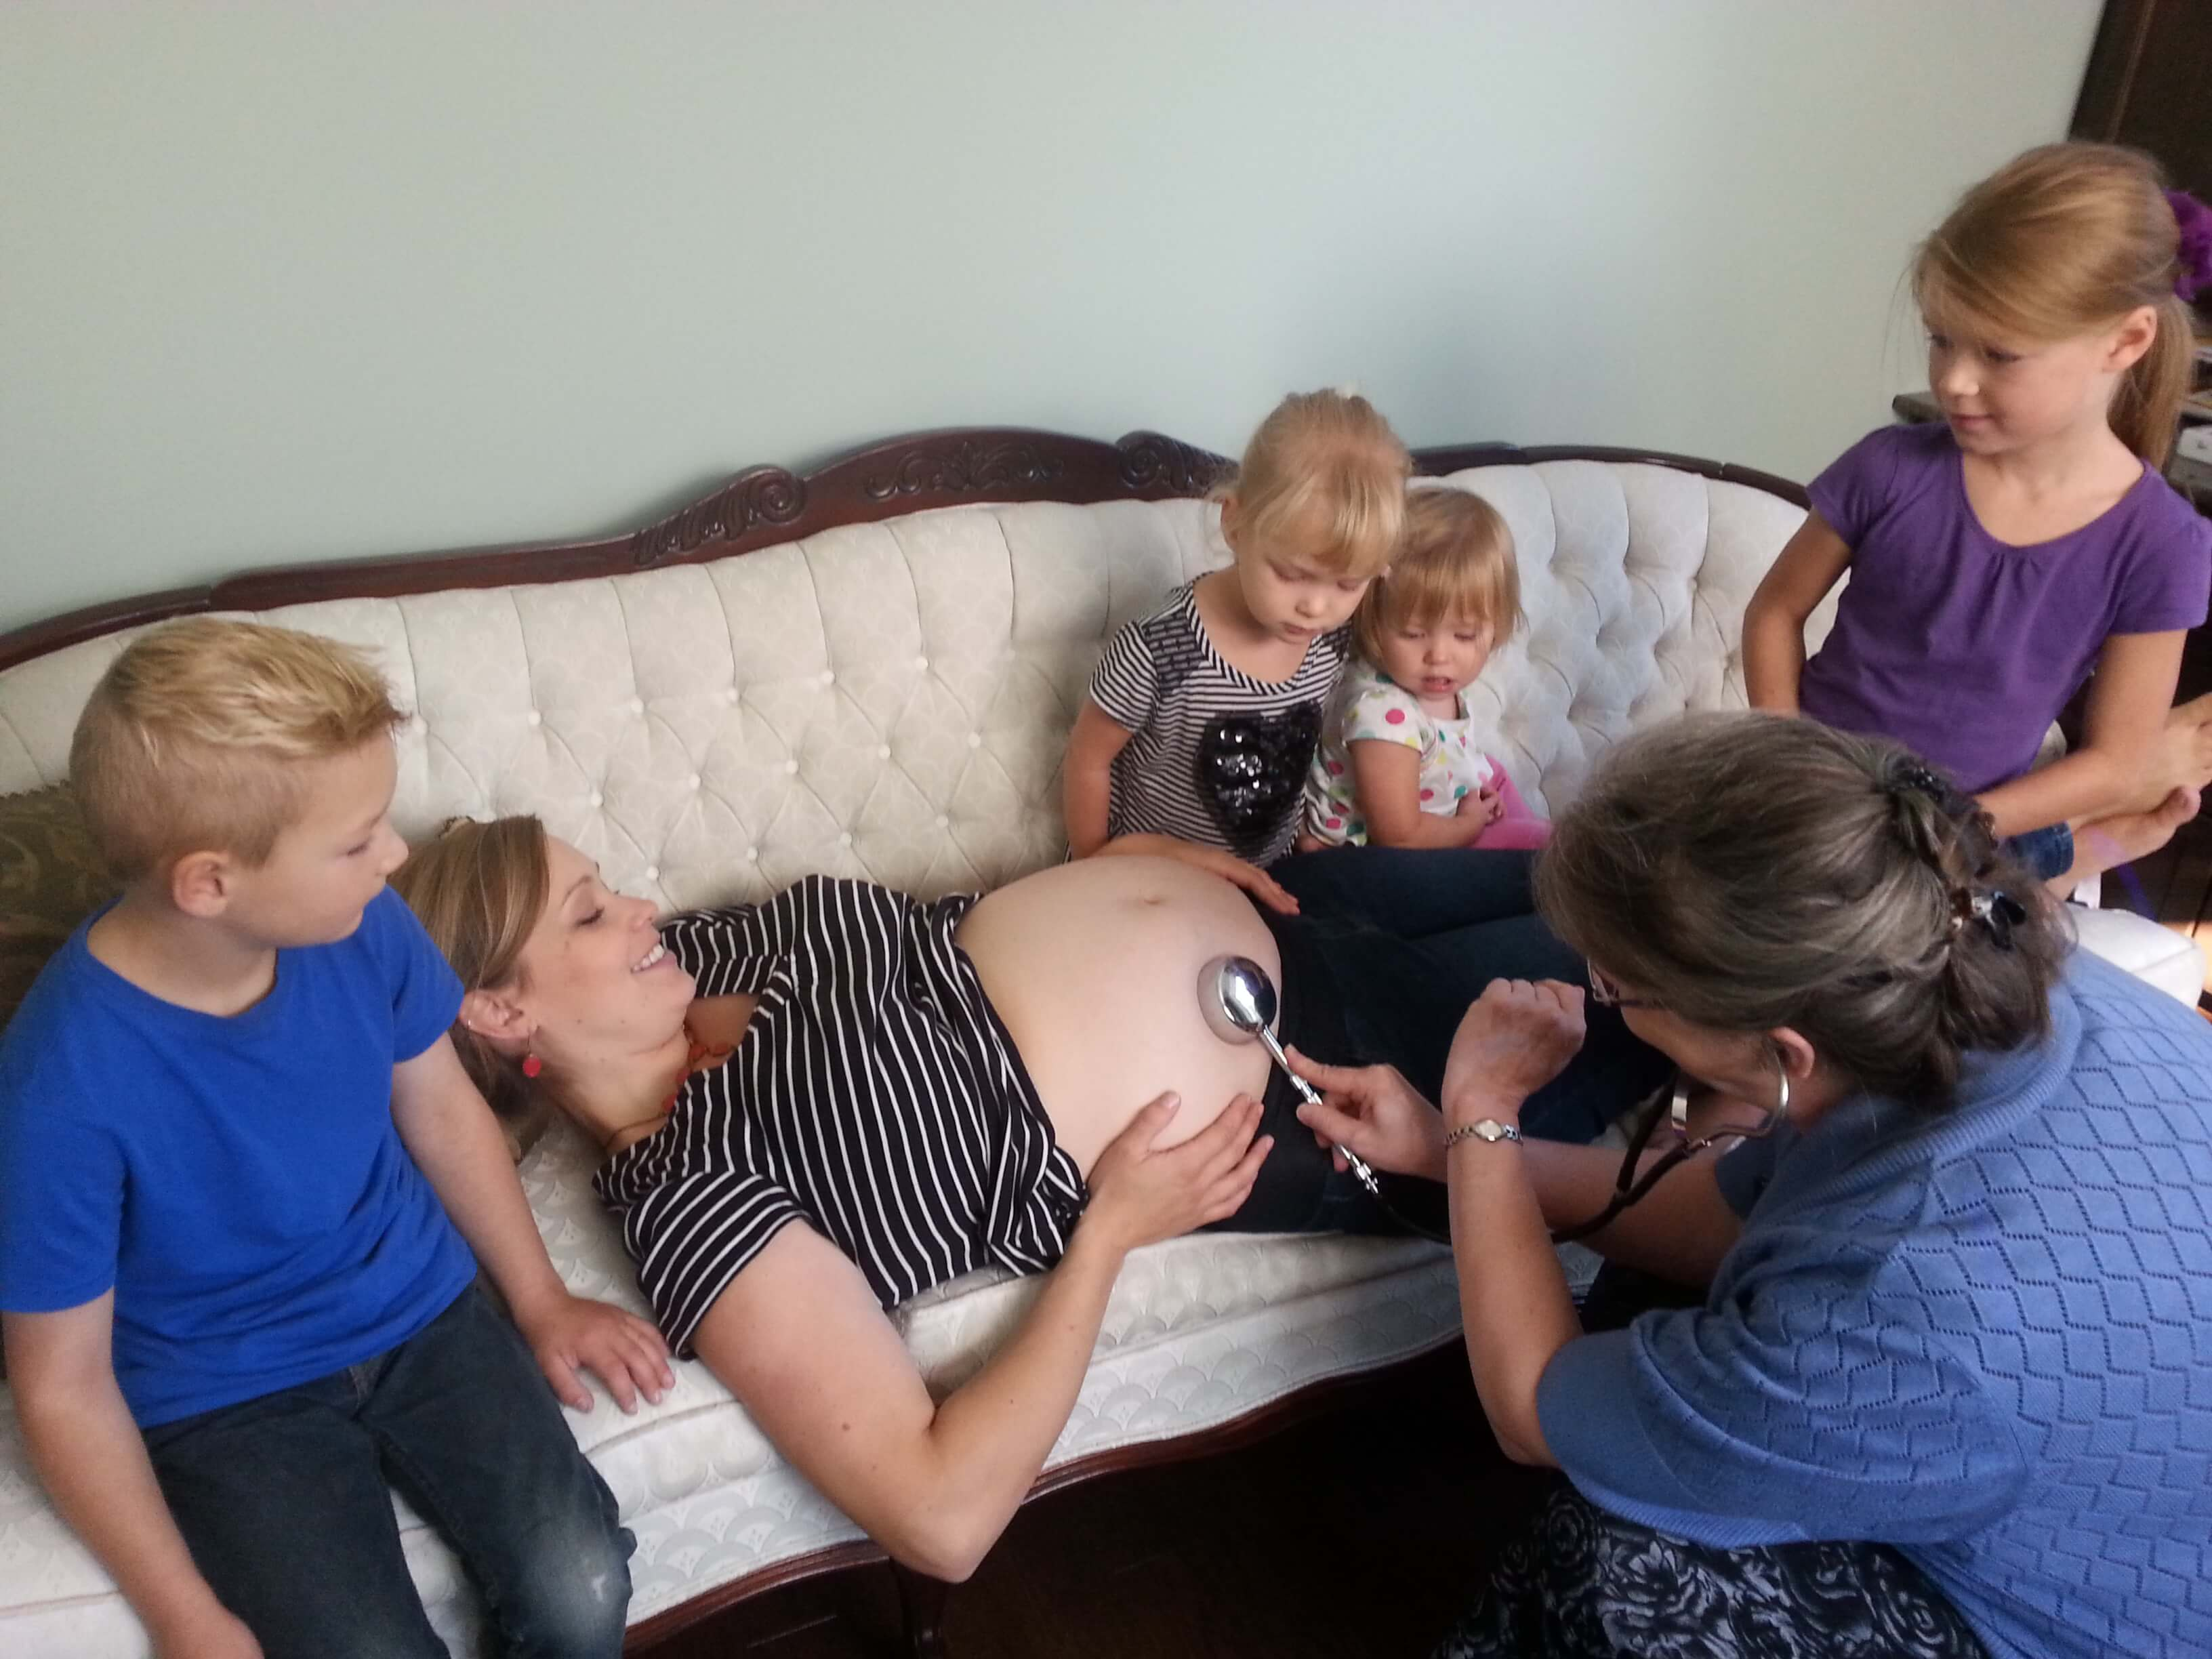 Prenatal appointment at JoySpring Midwifery with Cathy Harness and siblings